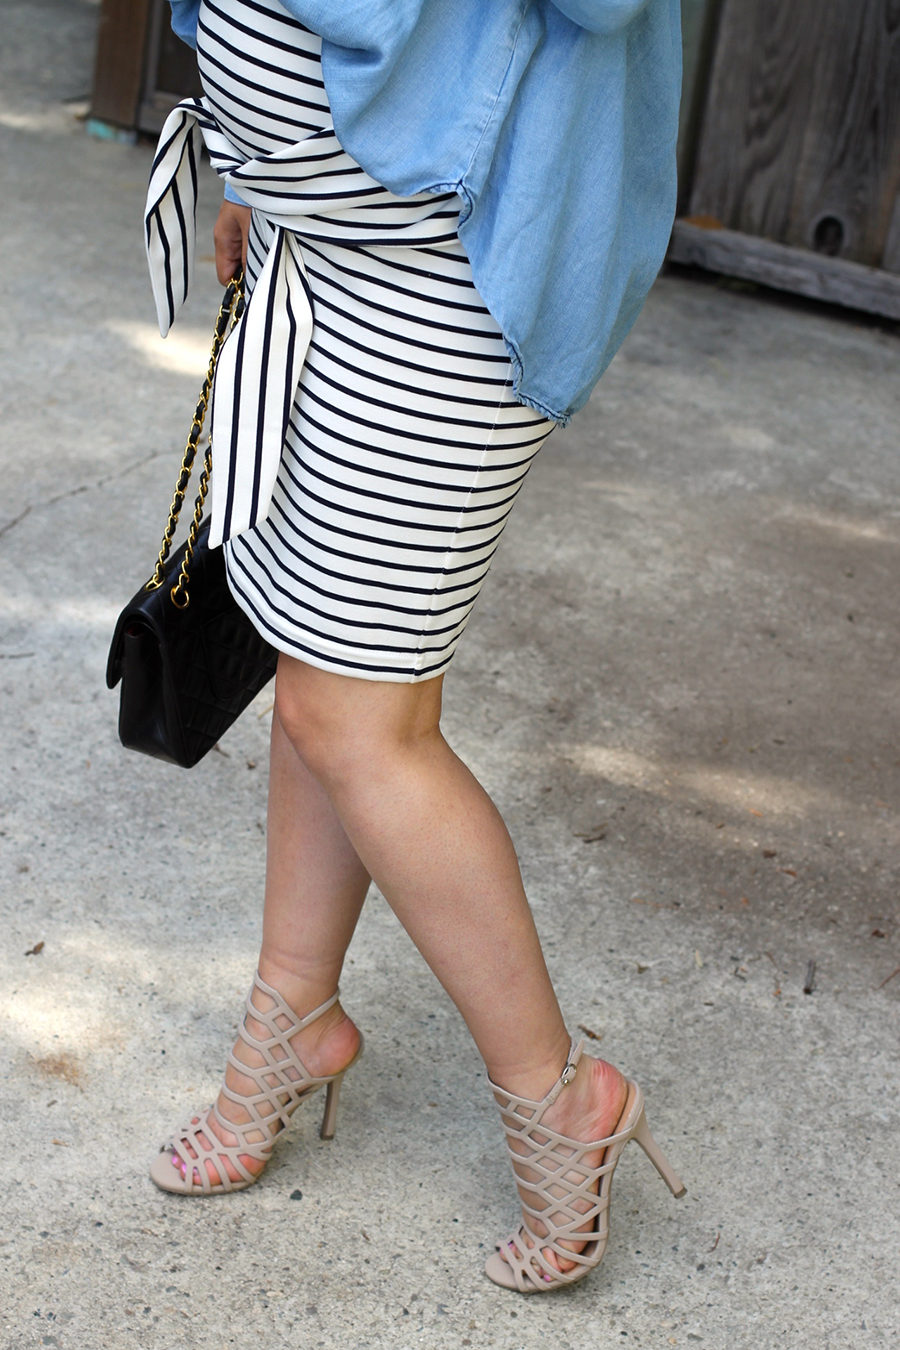 Kingdom & State-Tie Front Skirt-Maternity Style-Pregnancy Style-Chambray Top-Target Style-Have Need Want 5